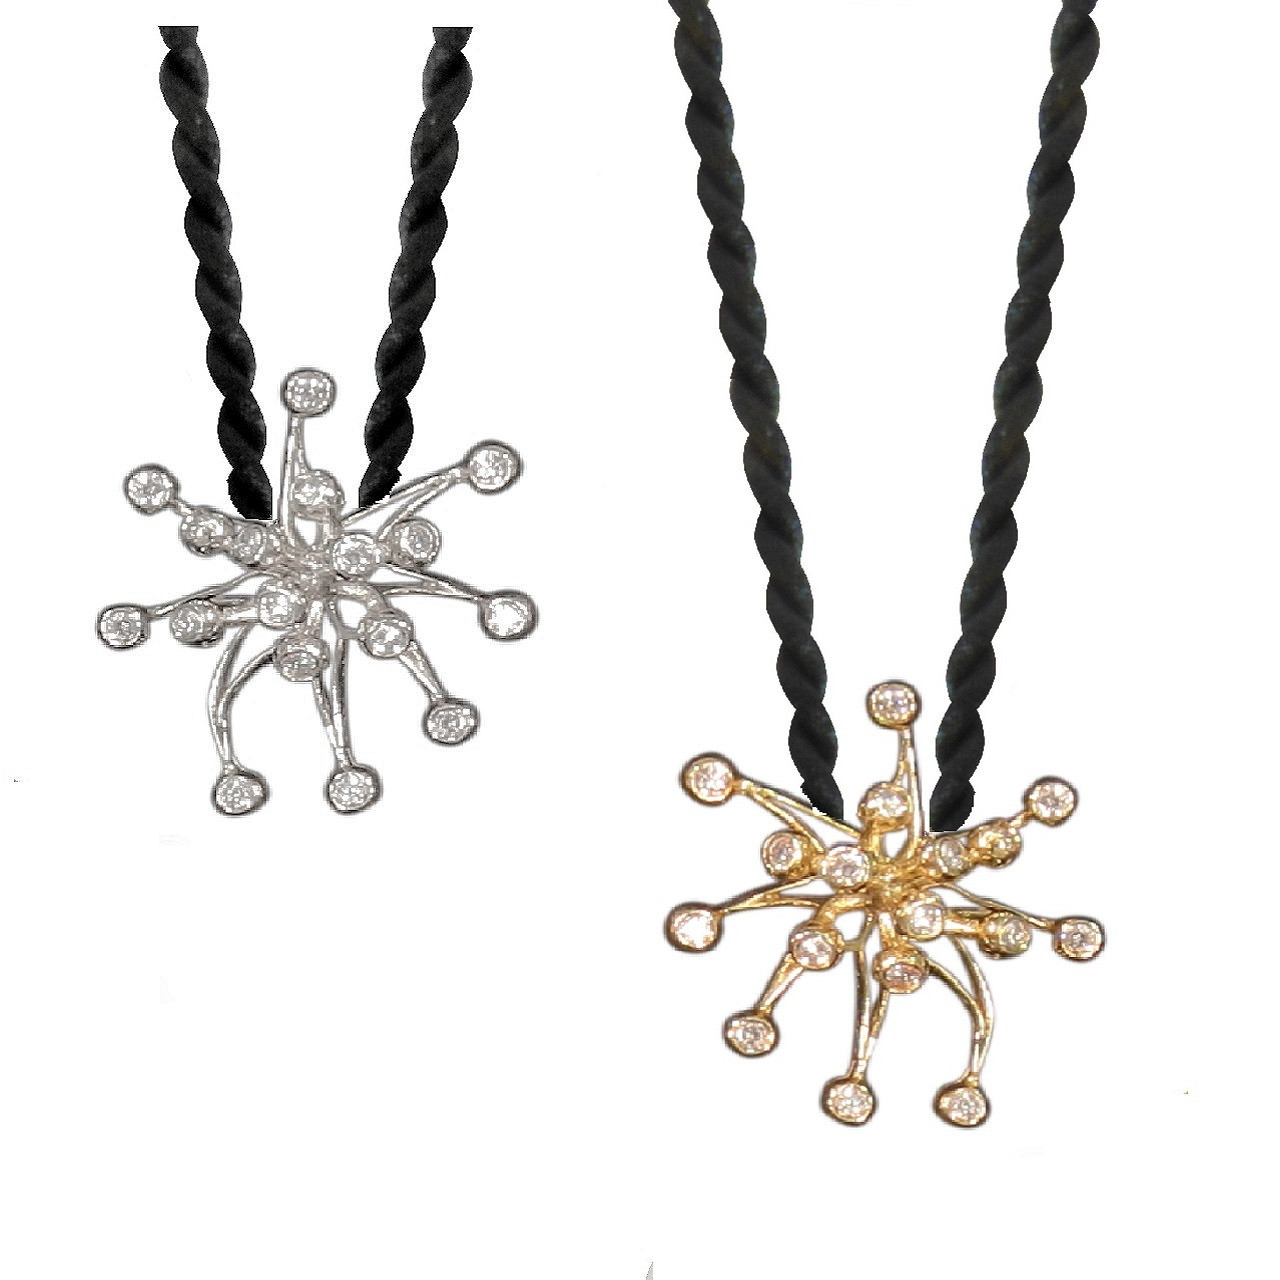 Fireworks pearl enhancers shown on cords.  Silver, white gold, yellow gold, gold plate - these can be made any way you want.  That the advantage of buying directly from the artist.